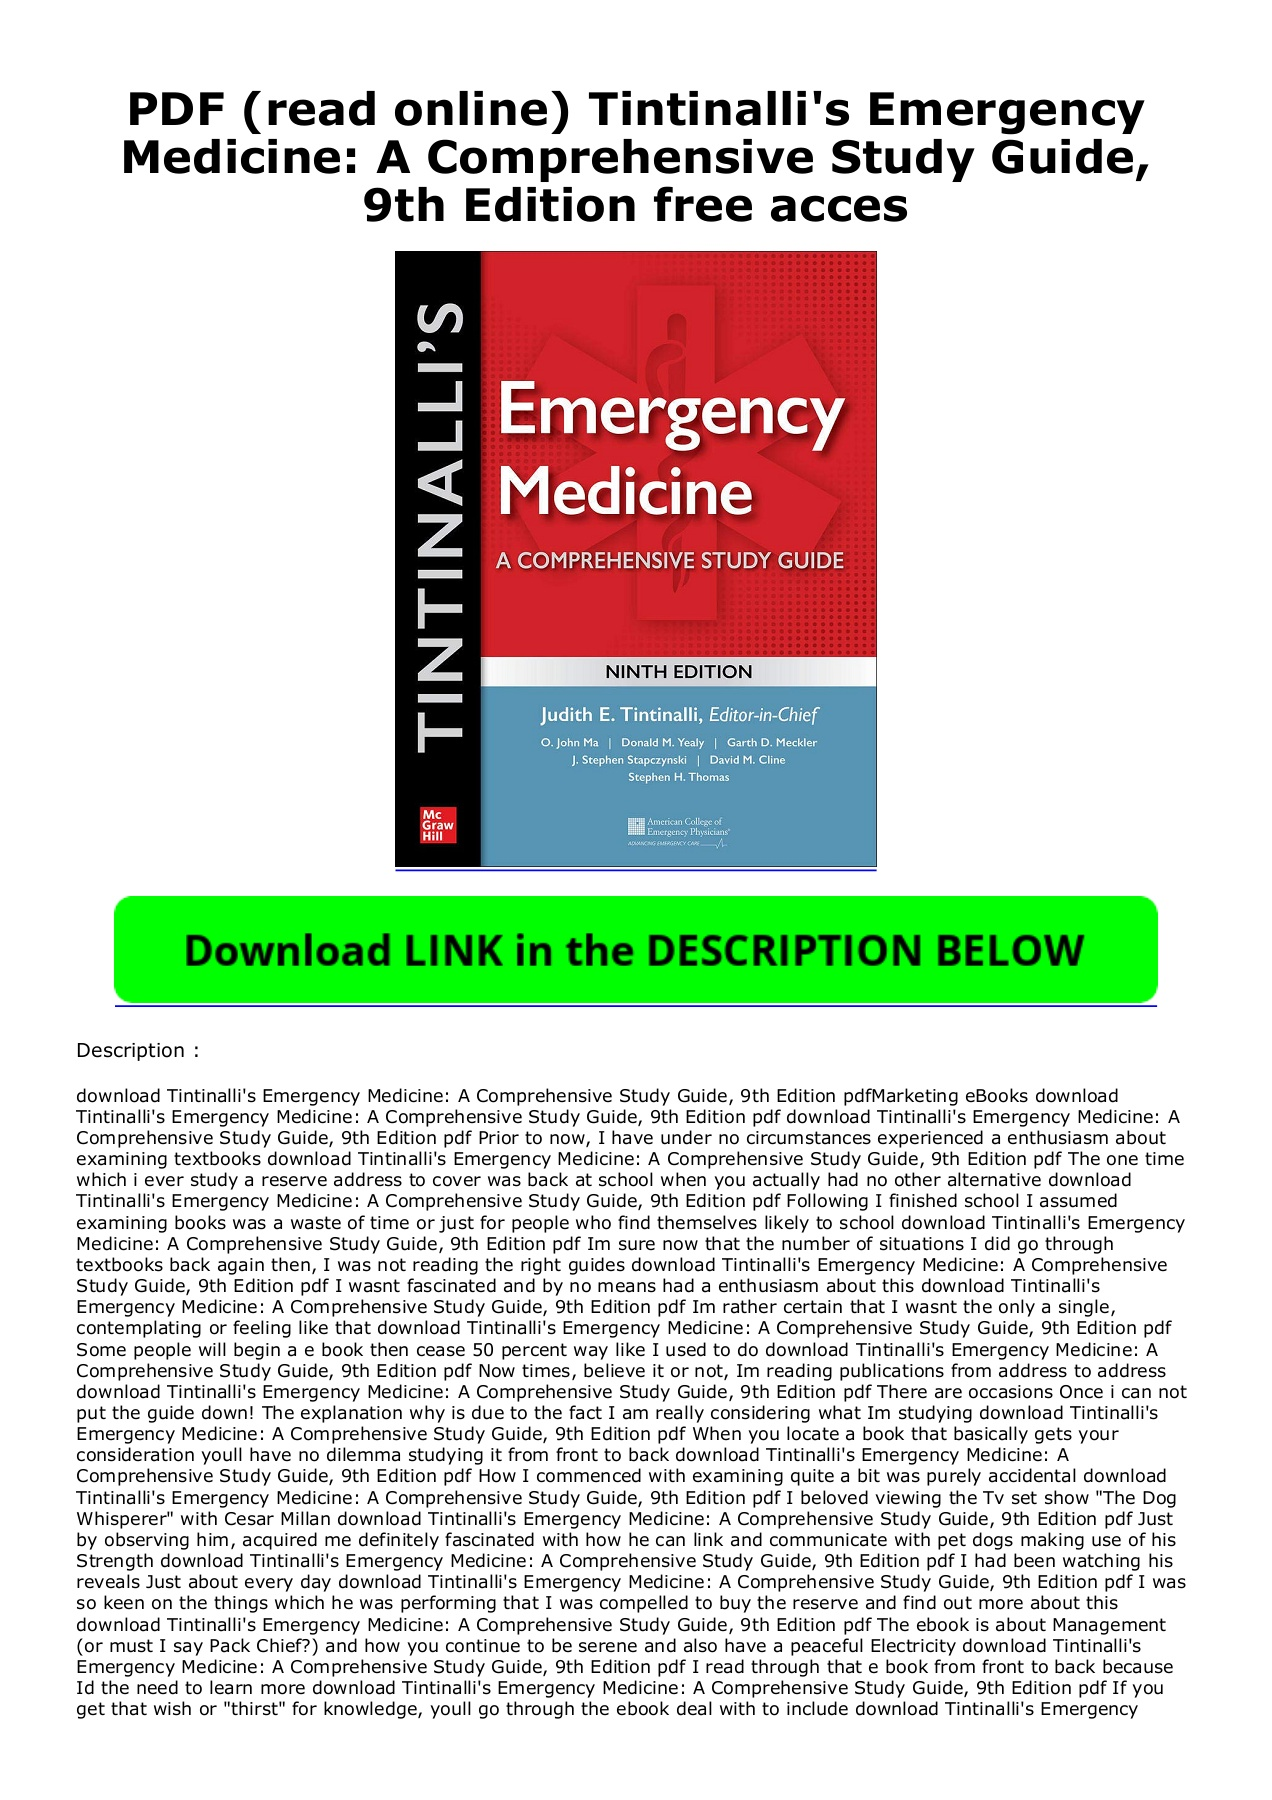 Tintinalli Emergency Medicine 9th Edition Pdf